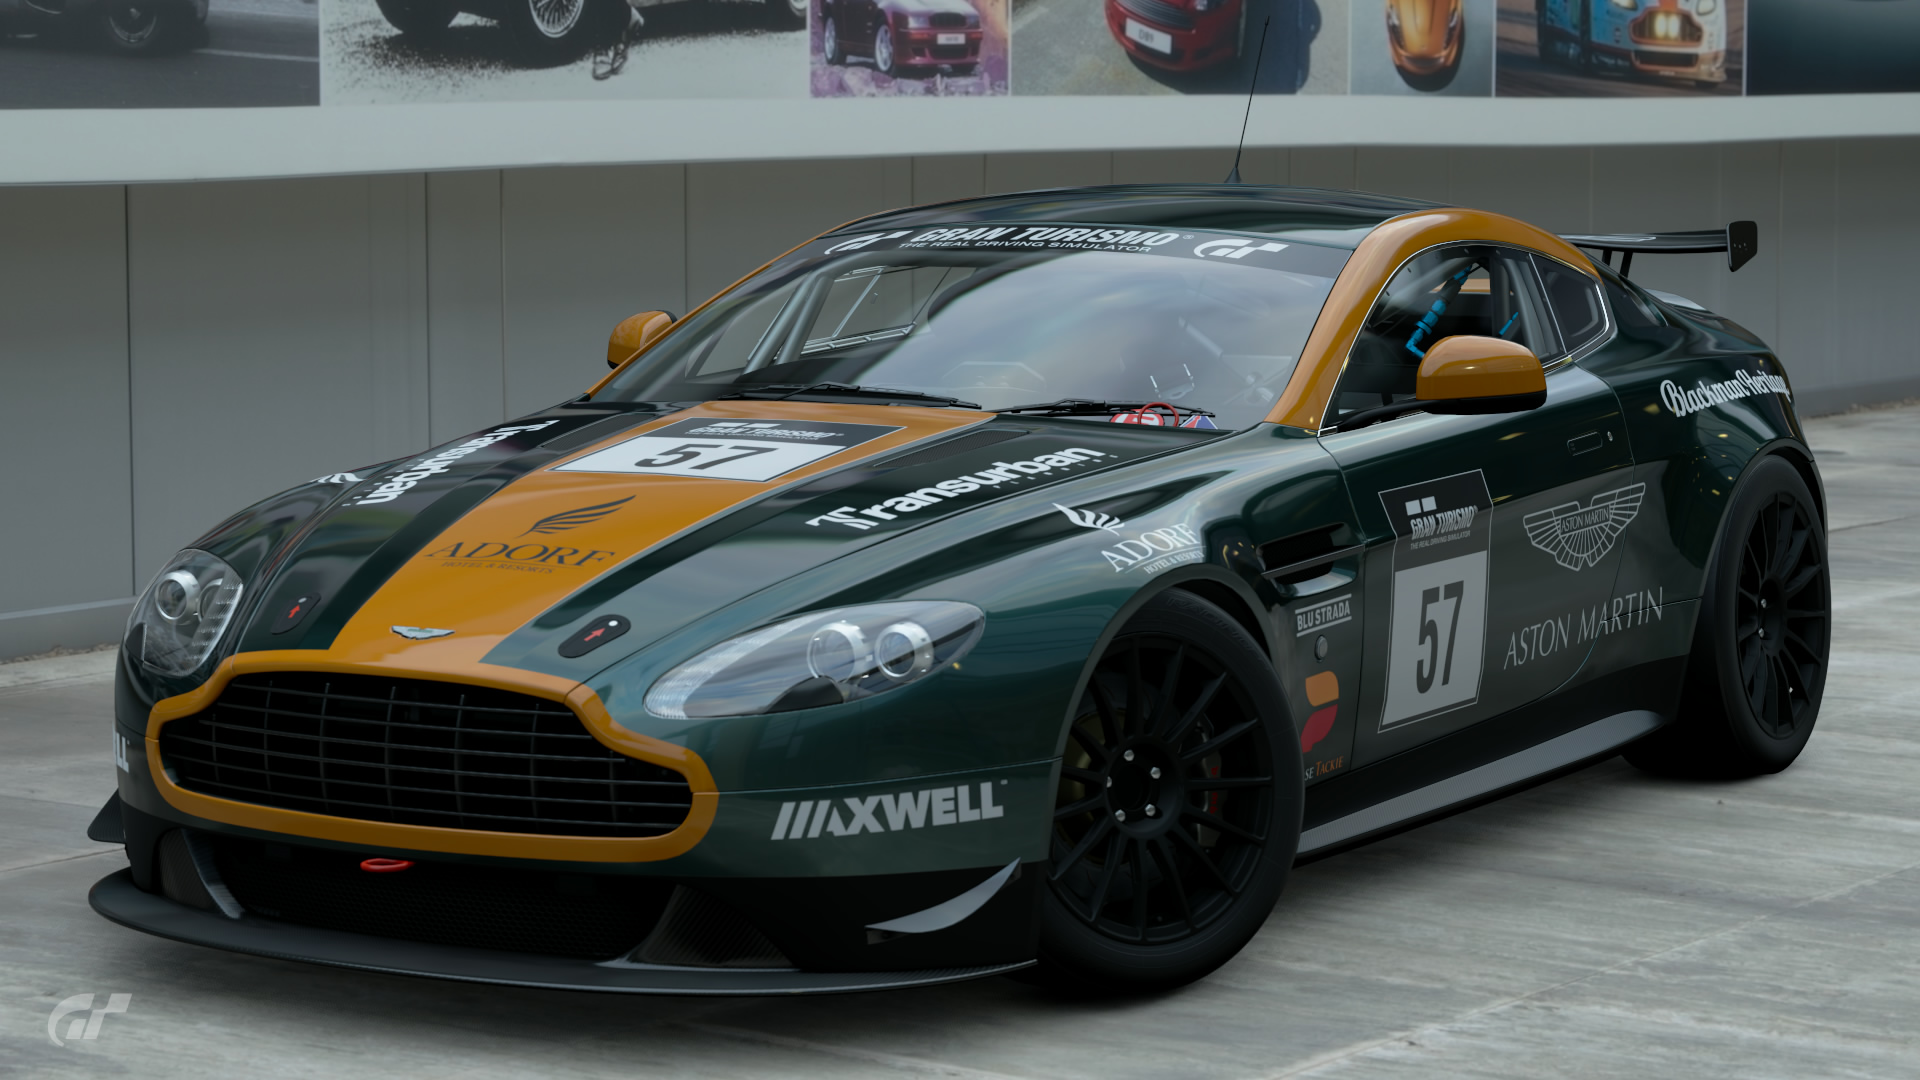 Aston Martin Vantage Gr Gran Turismo Wiki FANDOM Powered By Wikia - Aston martin sports car